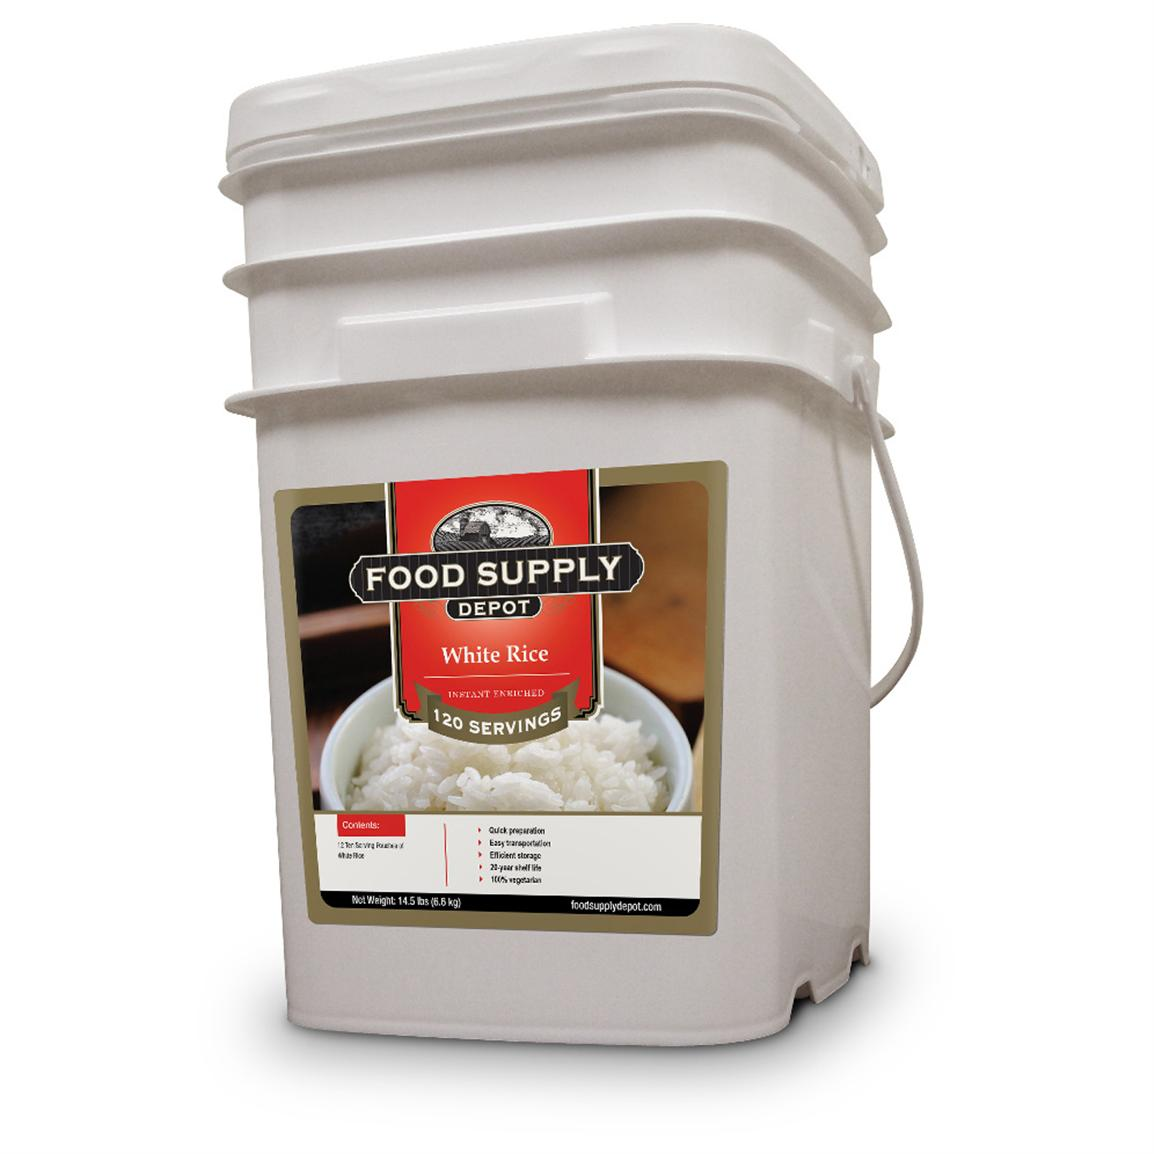 12-Pk. Bucket of Food Supply Depot White Rice